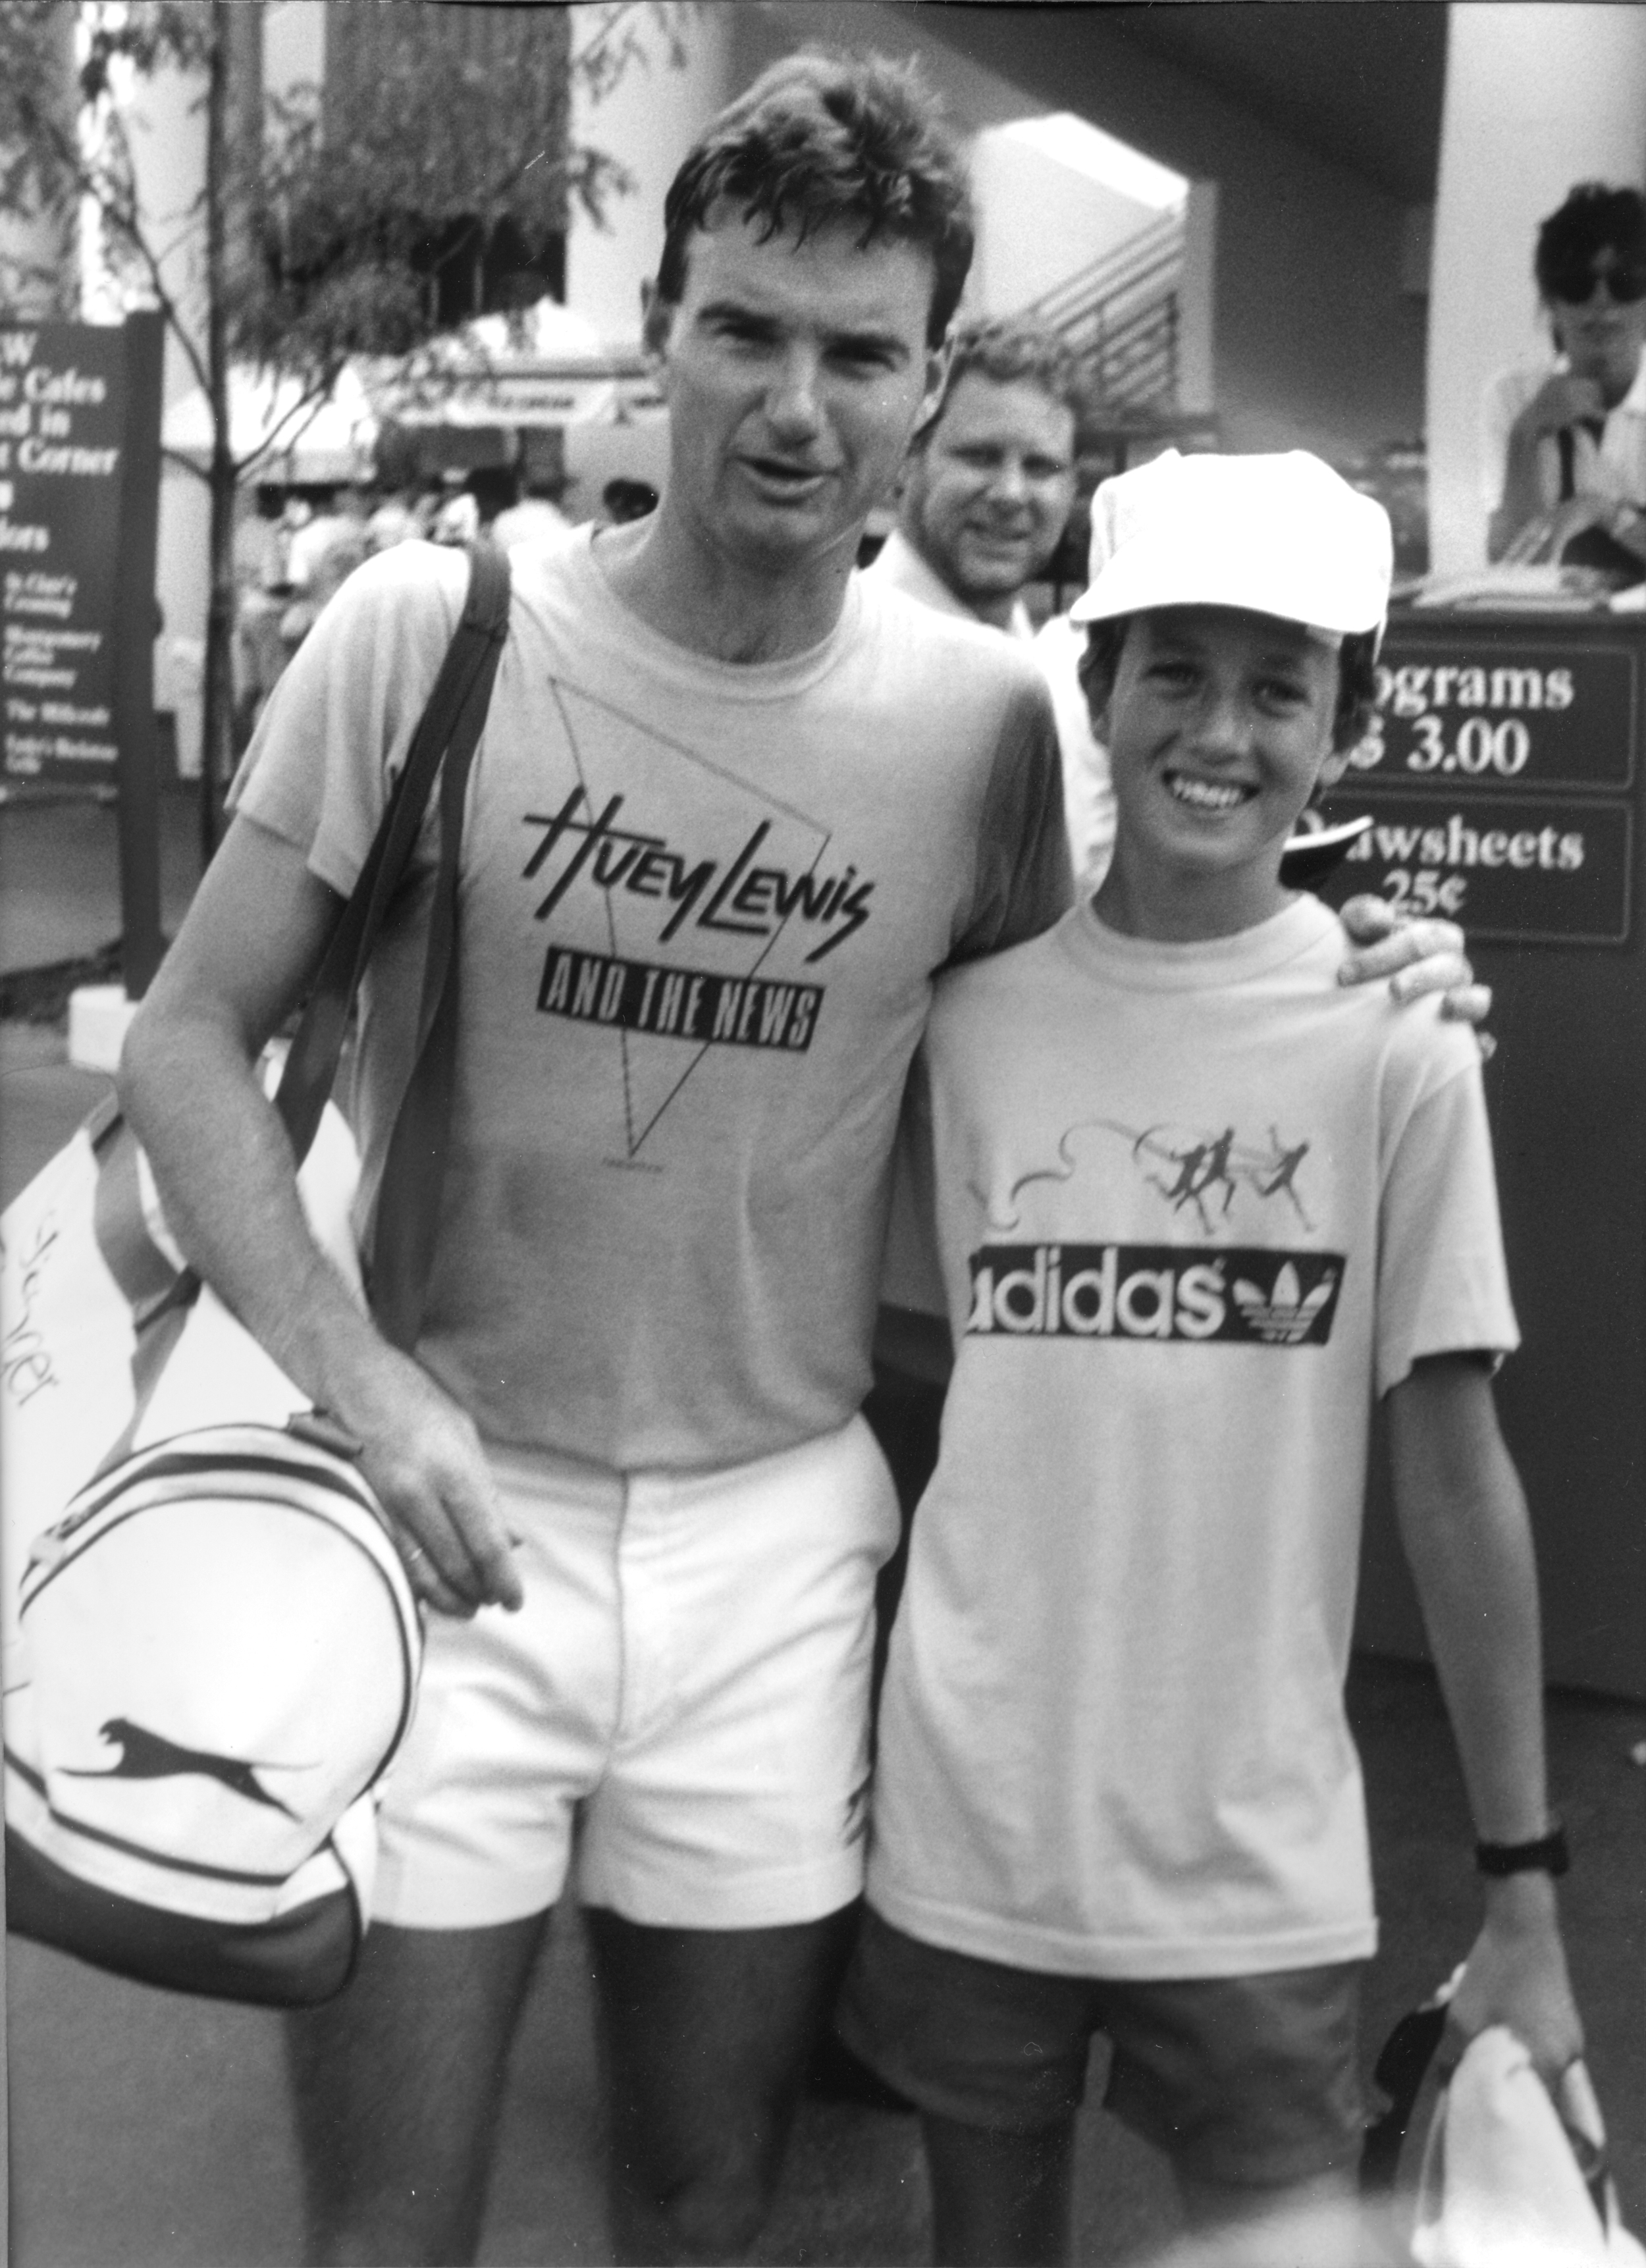 A much younger Jimmy with a much younger me. Nice hat, eh?